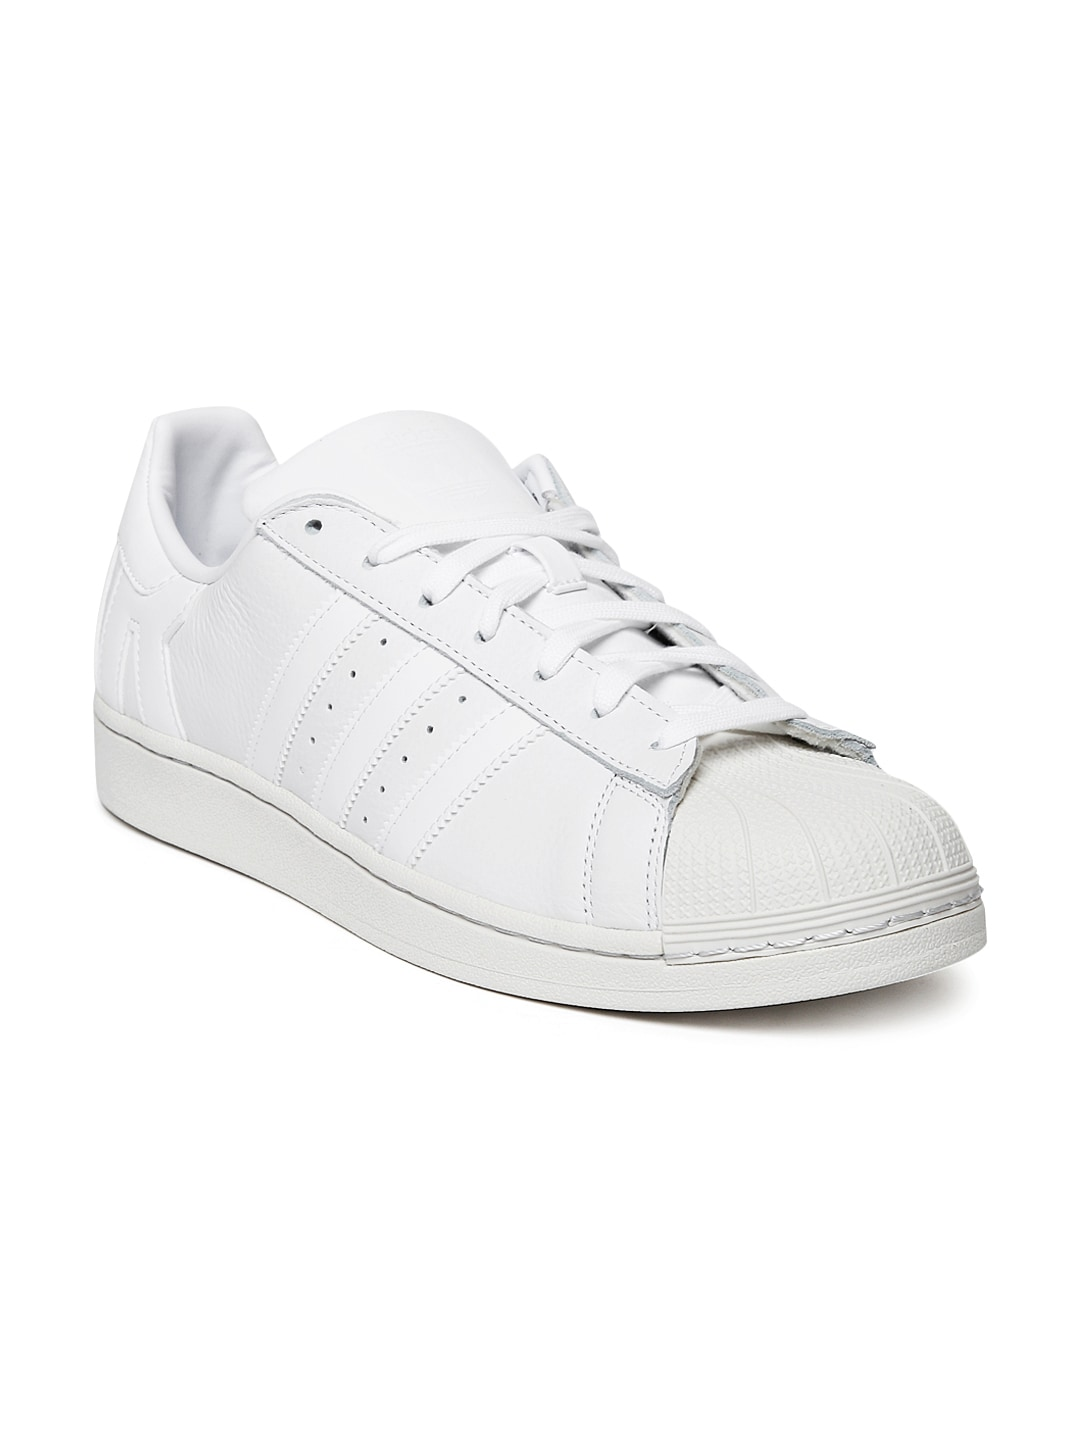 Adidas Superstar Shoes - Buy Adidas Superstar Shoes Online - Myntra 7835cd547